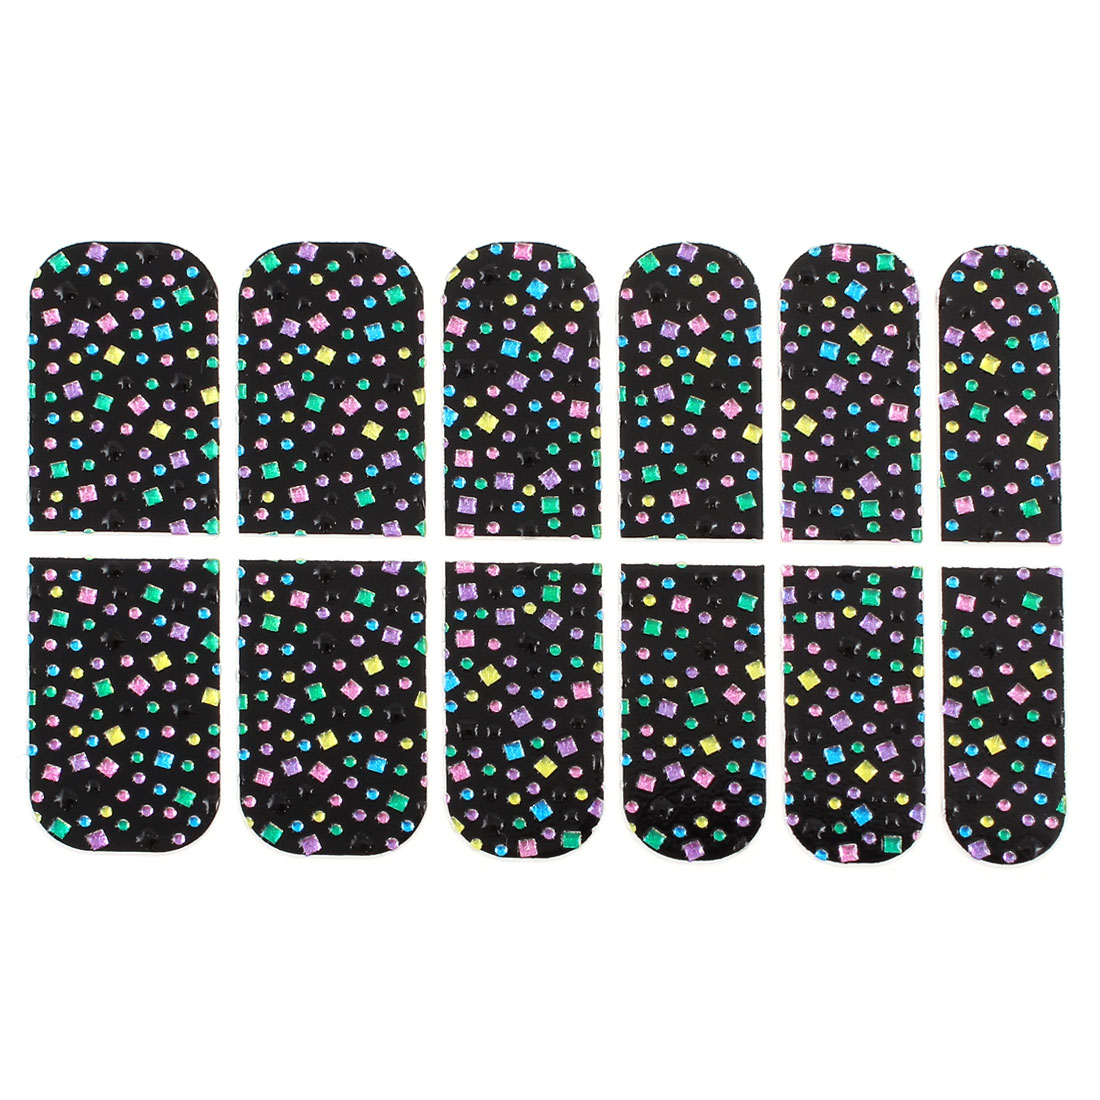 Woemen 12 Pcs Colourful Faux Crystal Decor Nail Wraps Foils Art Stickers Black